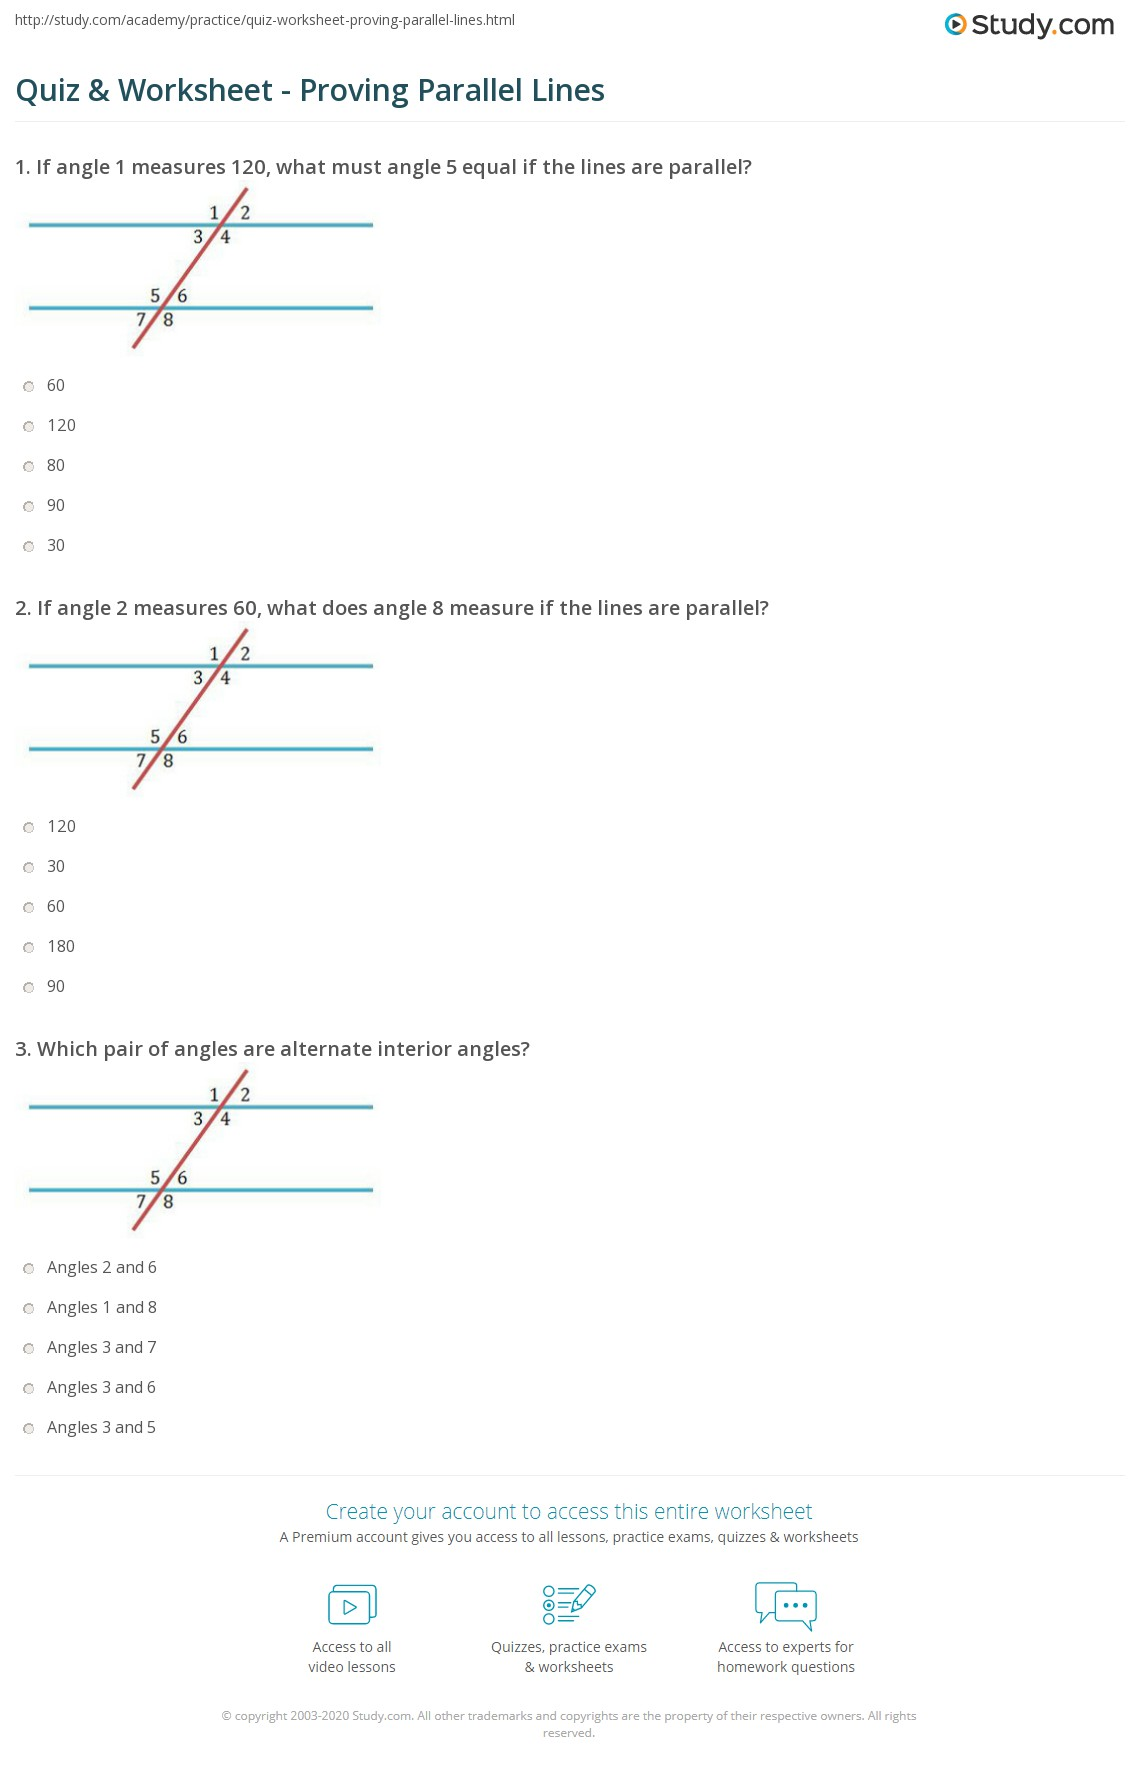 hight resolution of Angles And Parallel Lines Worksheet Answers - Promotiontablecovers